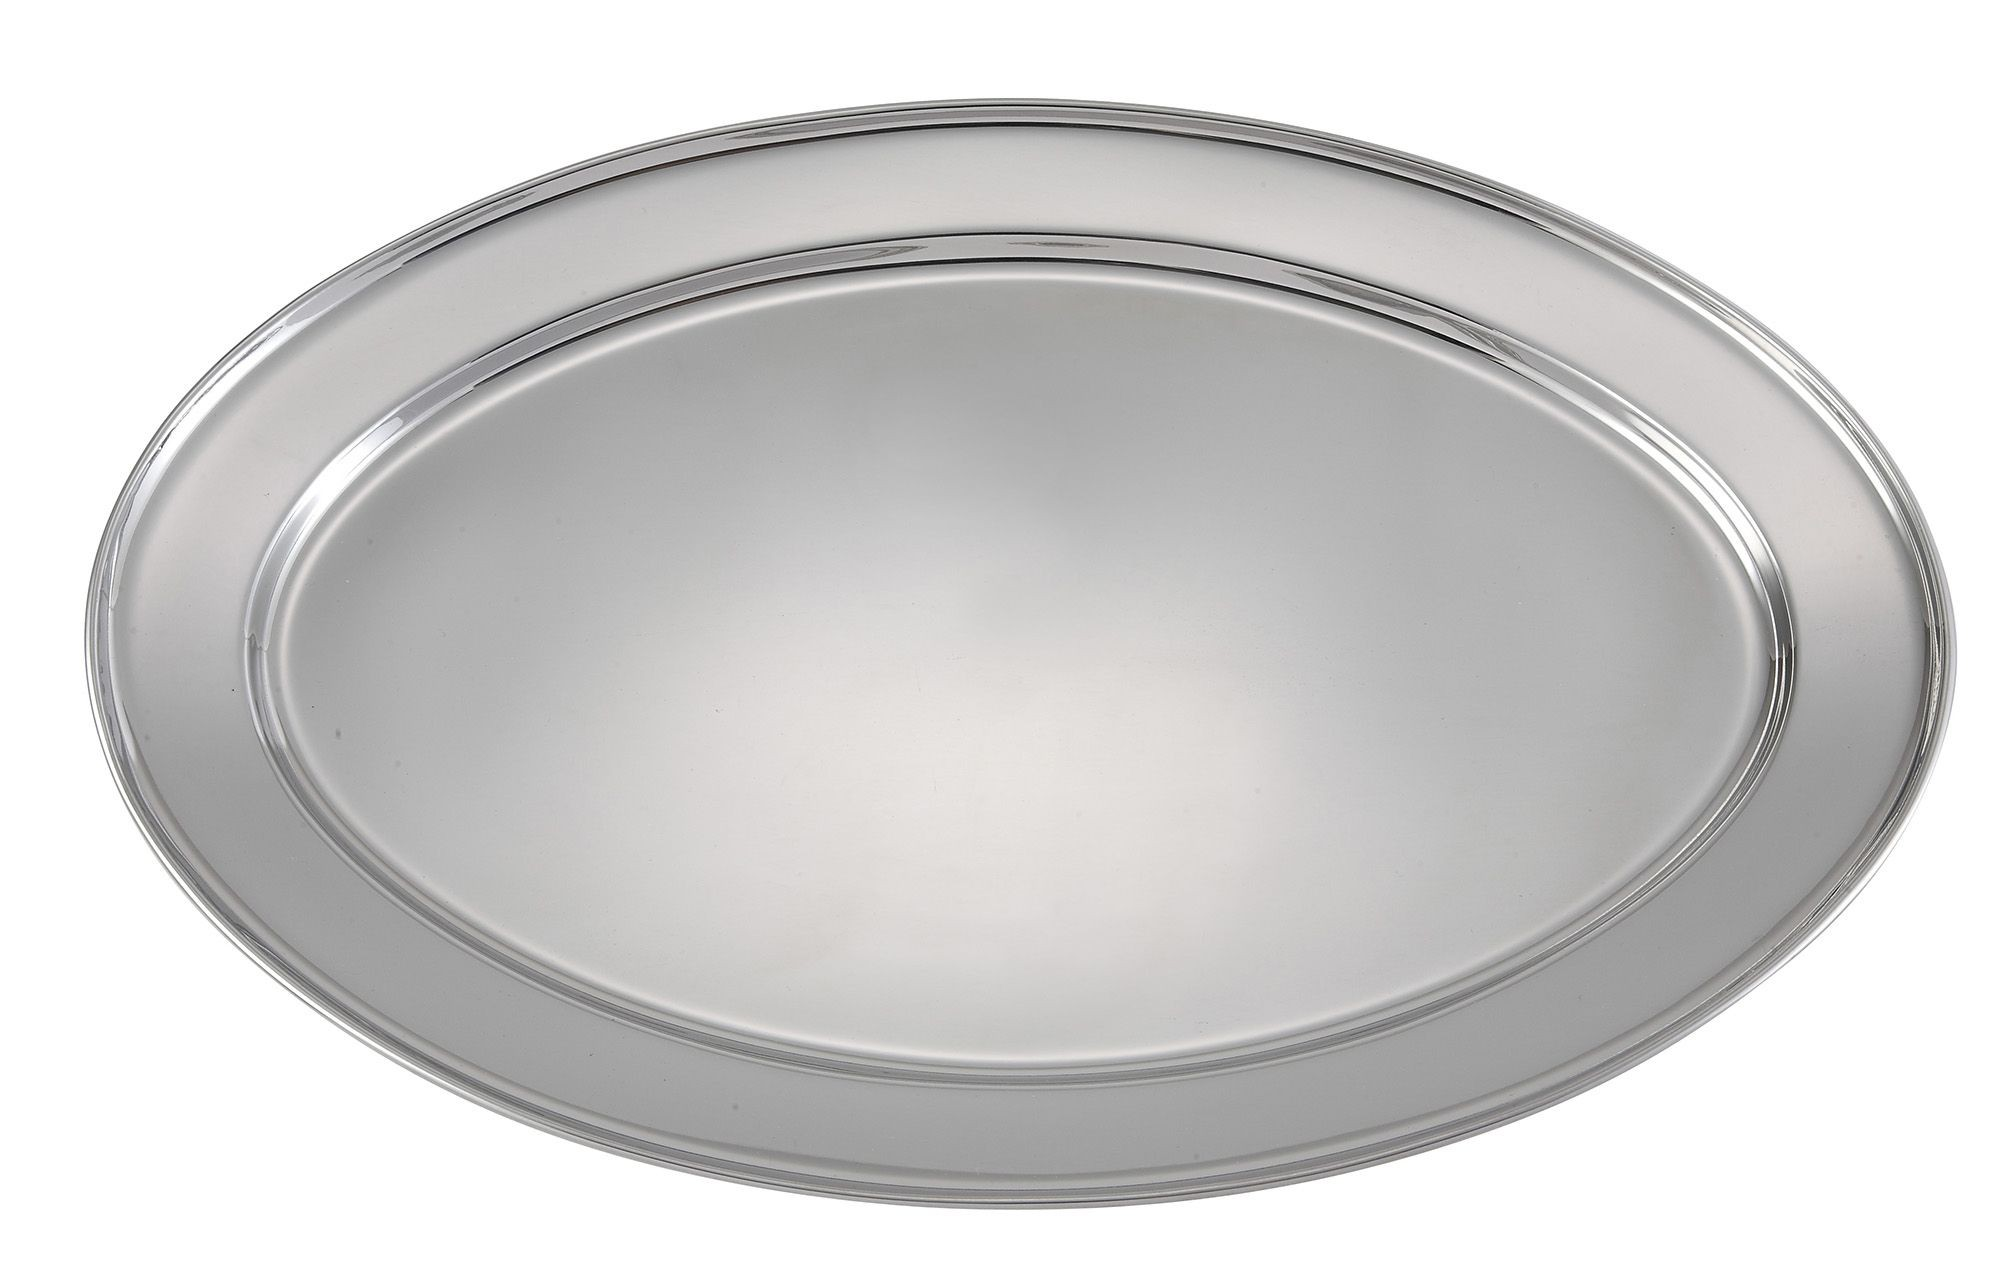 Heavy Stainless Steel Oval Platter - 21-3/4 X 14-1/2